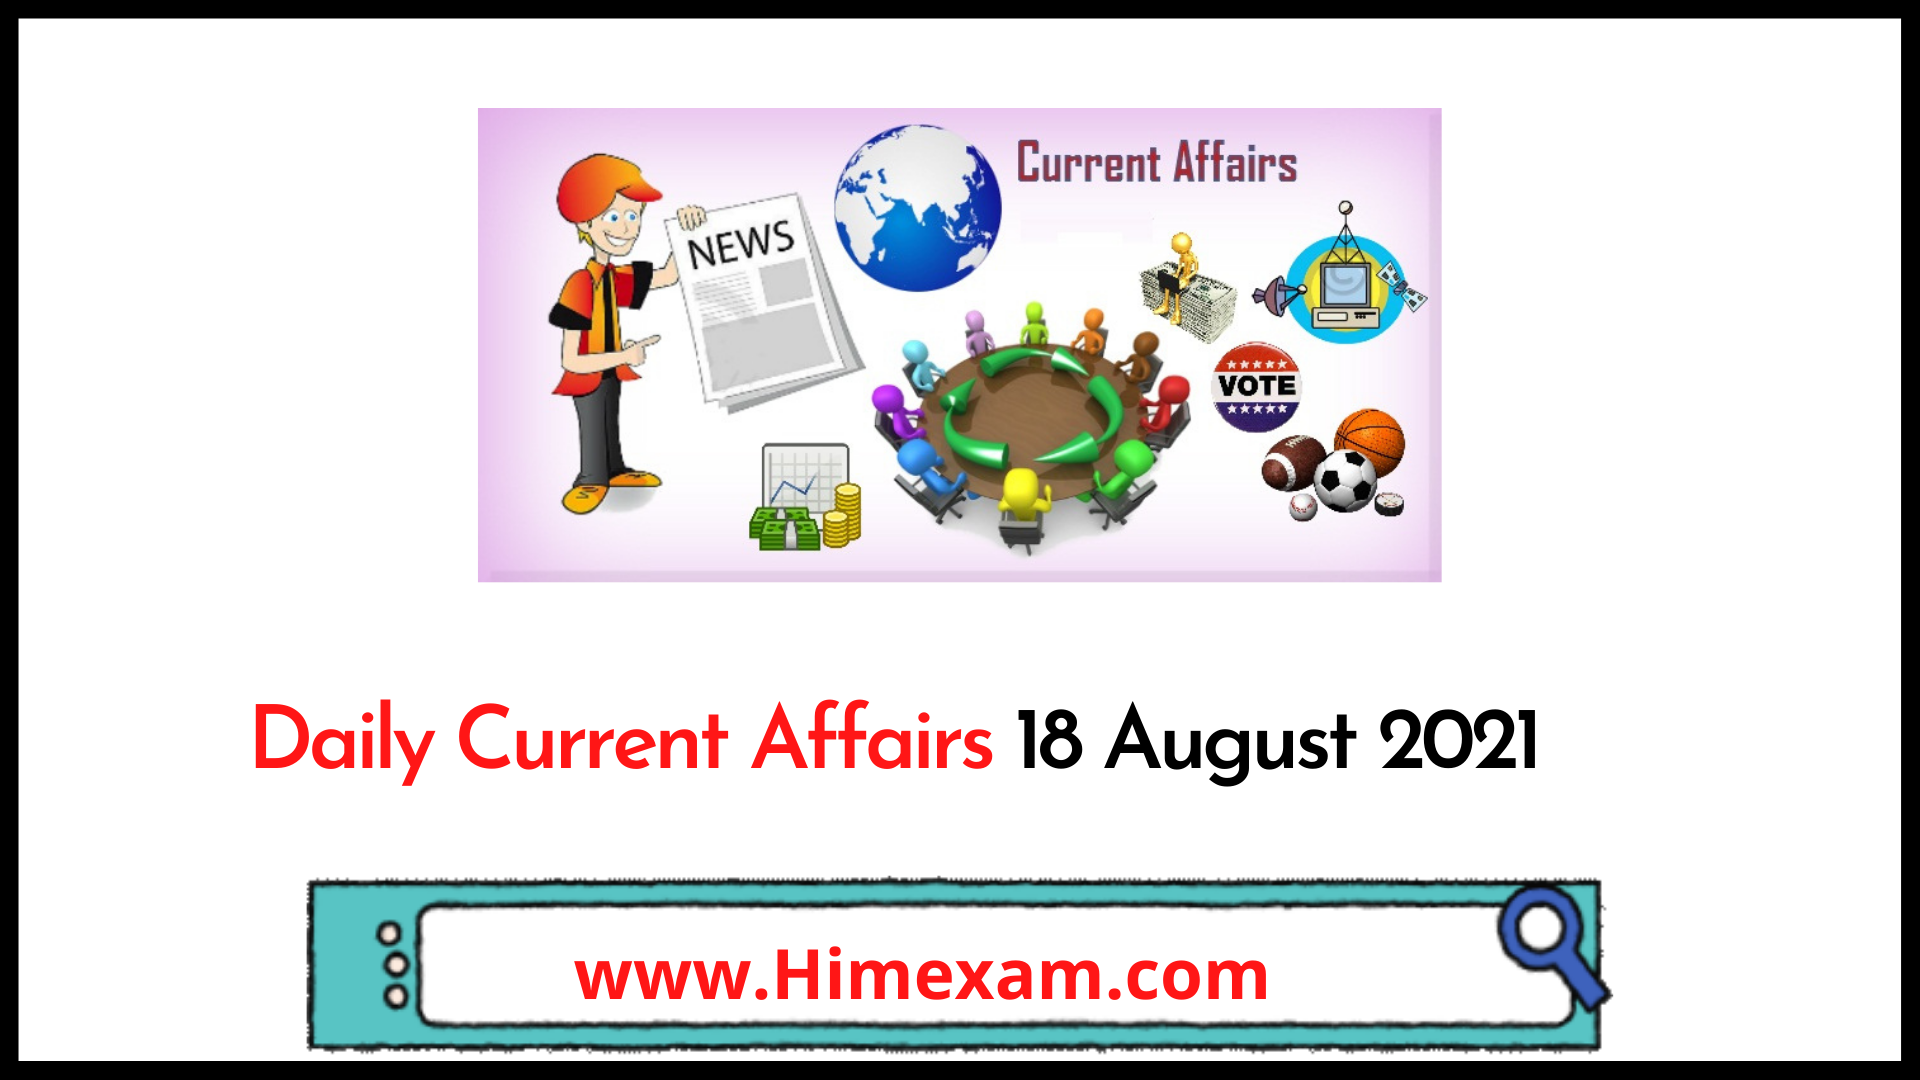 Daily Current Affairs 18 August 2021